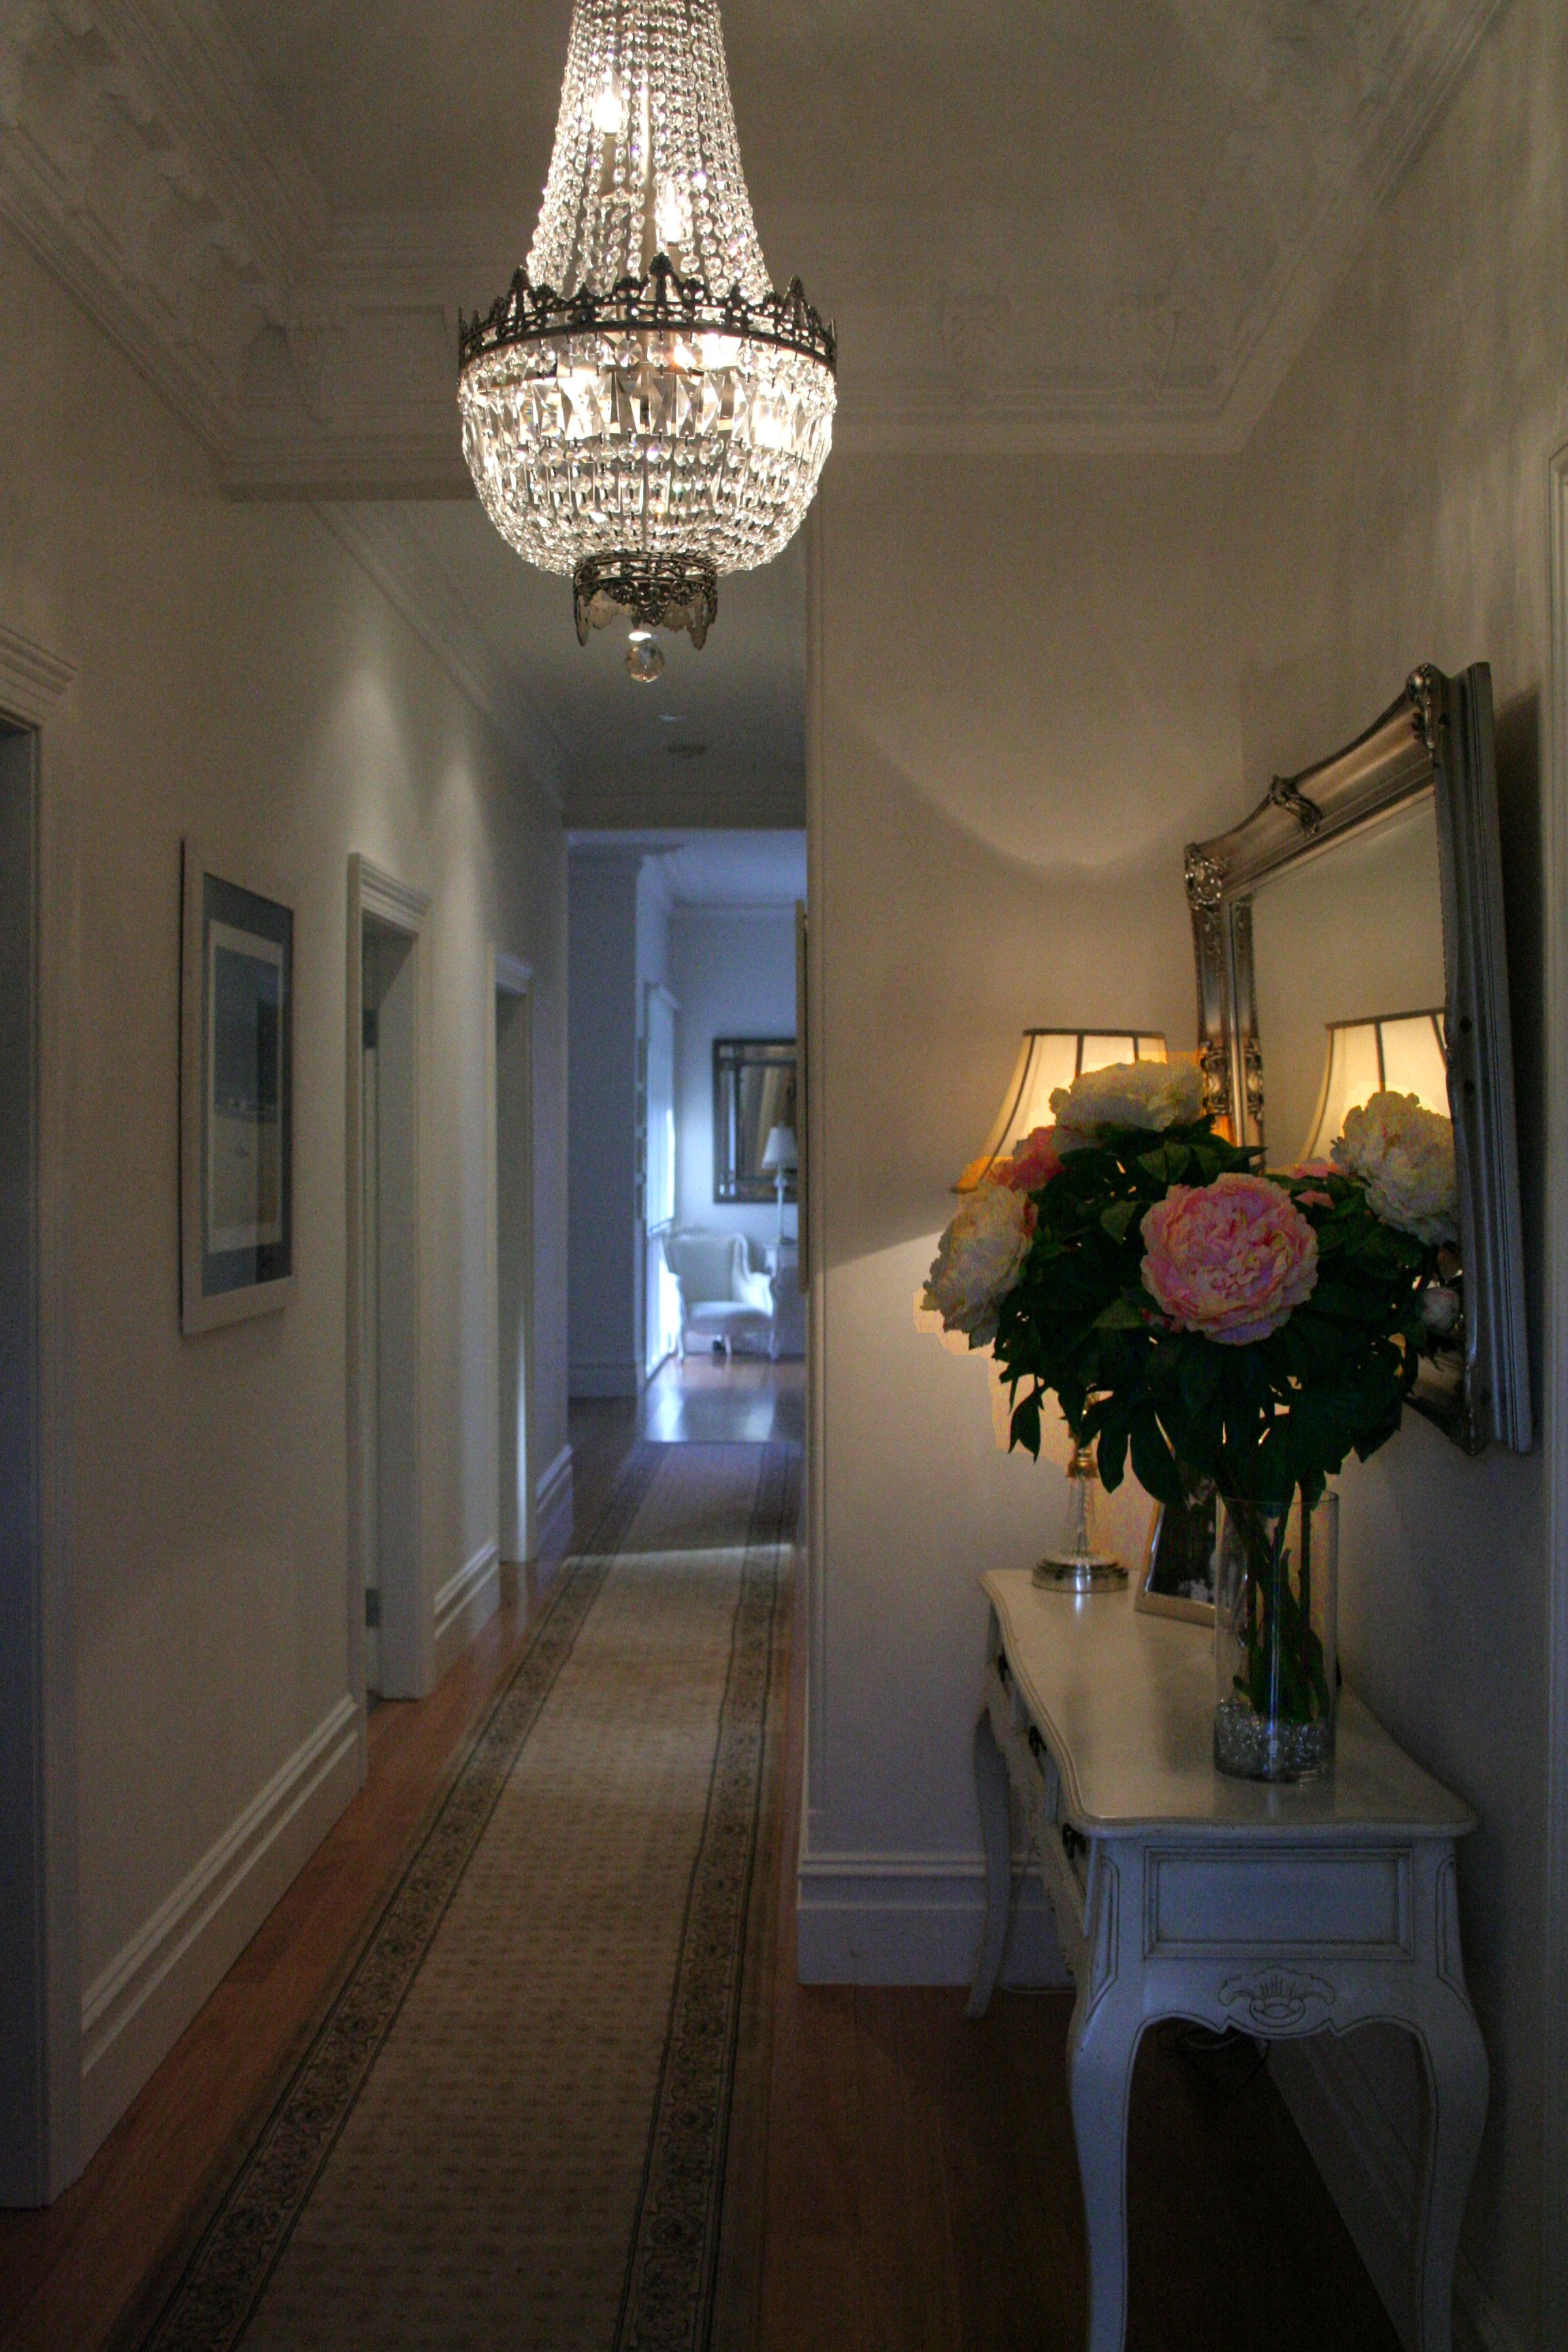 Traditional style chandelier brings glamour to a hallway